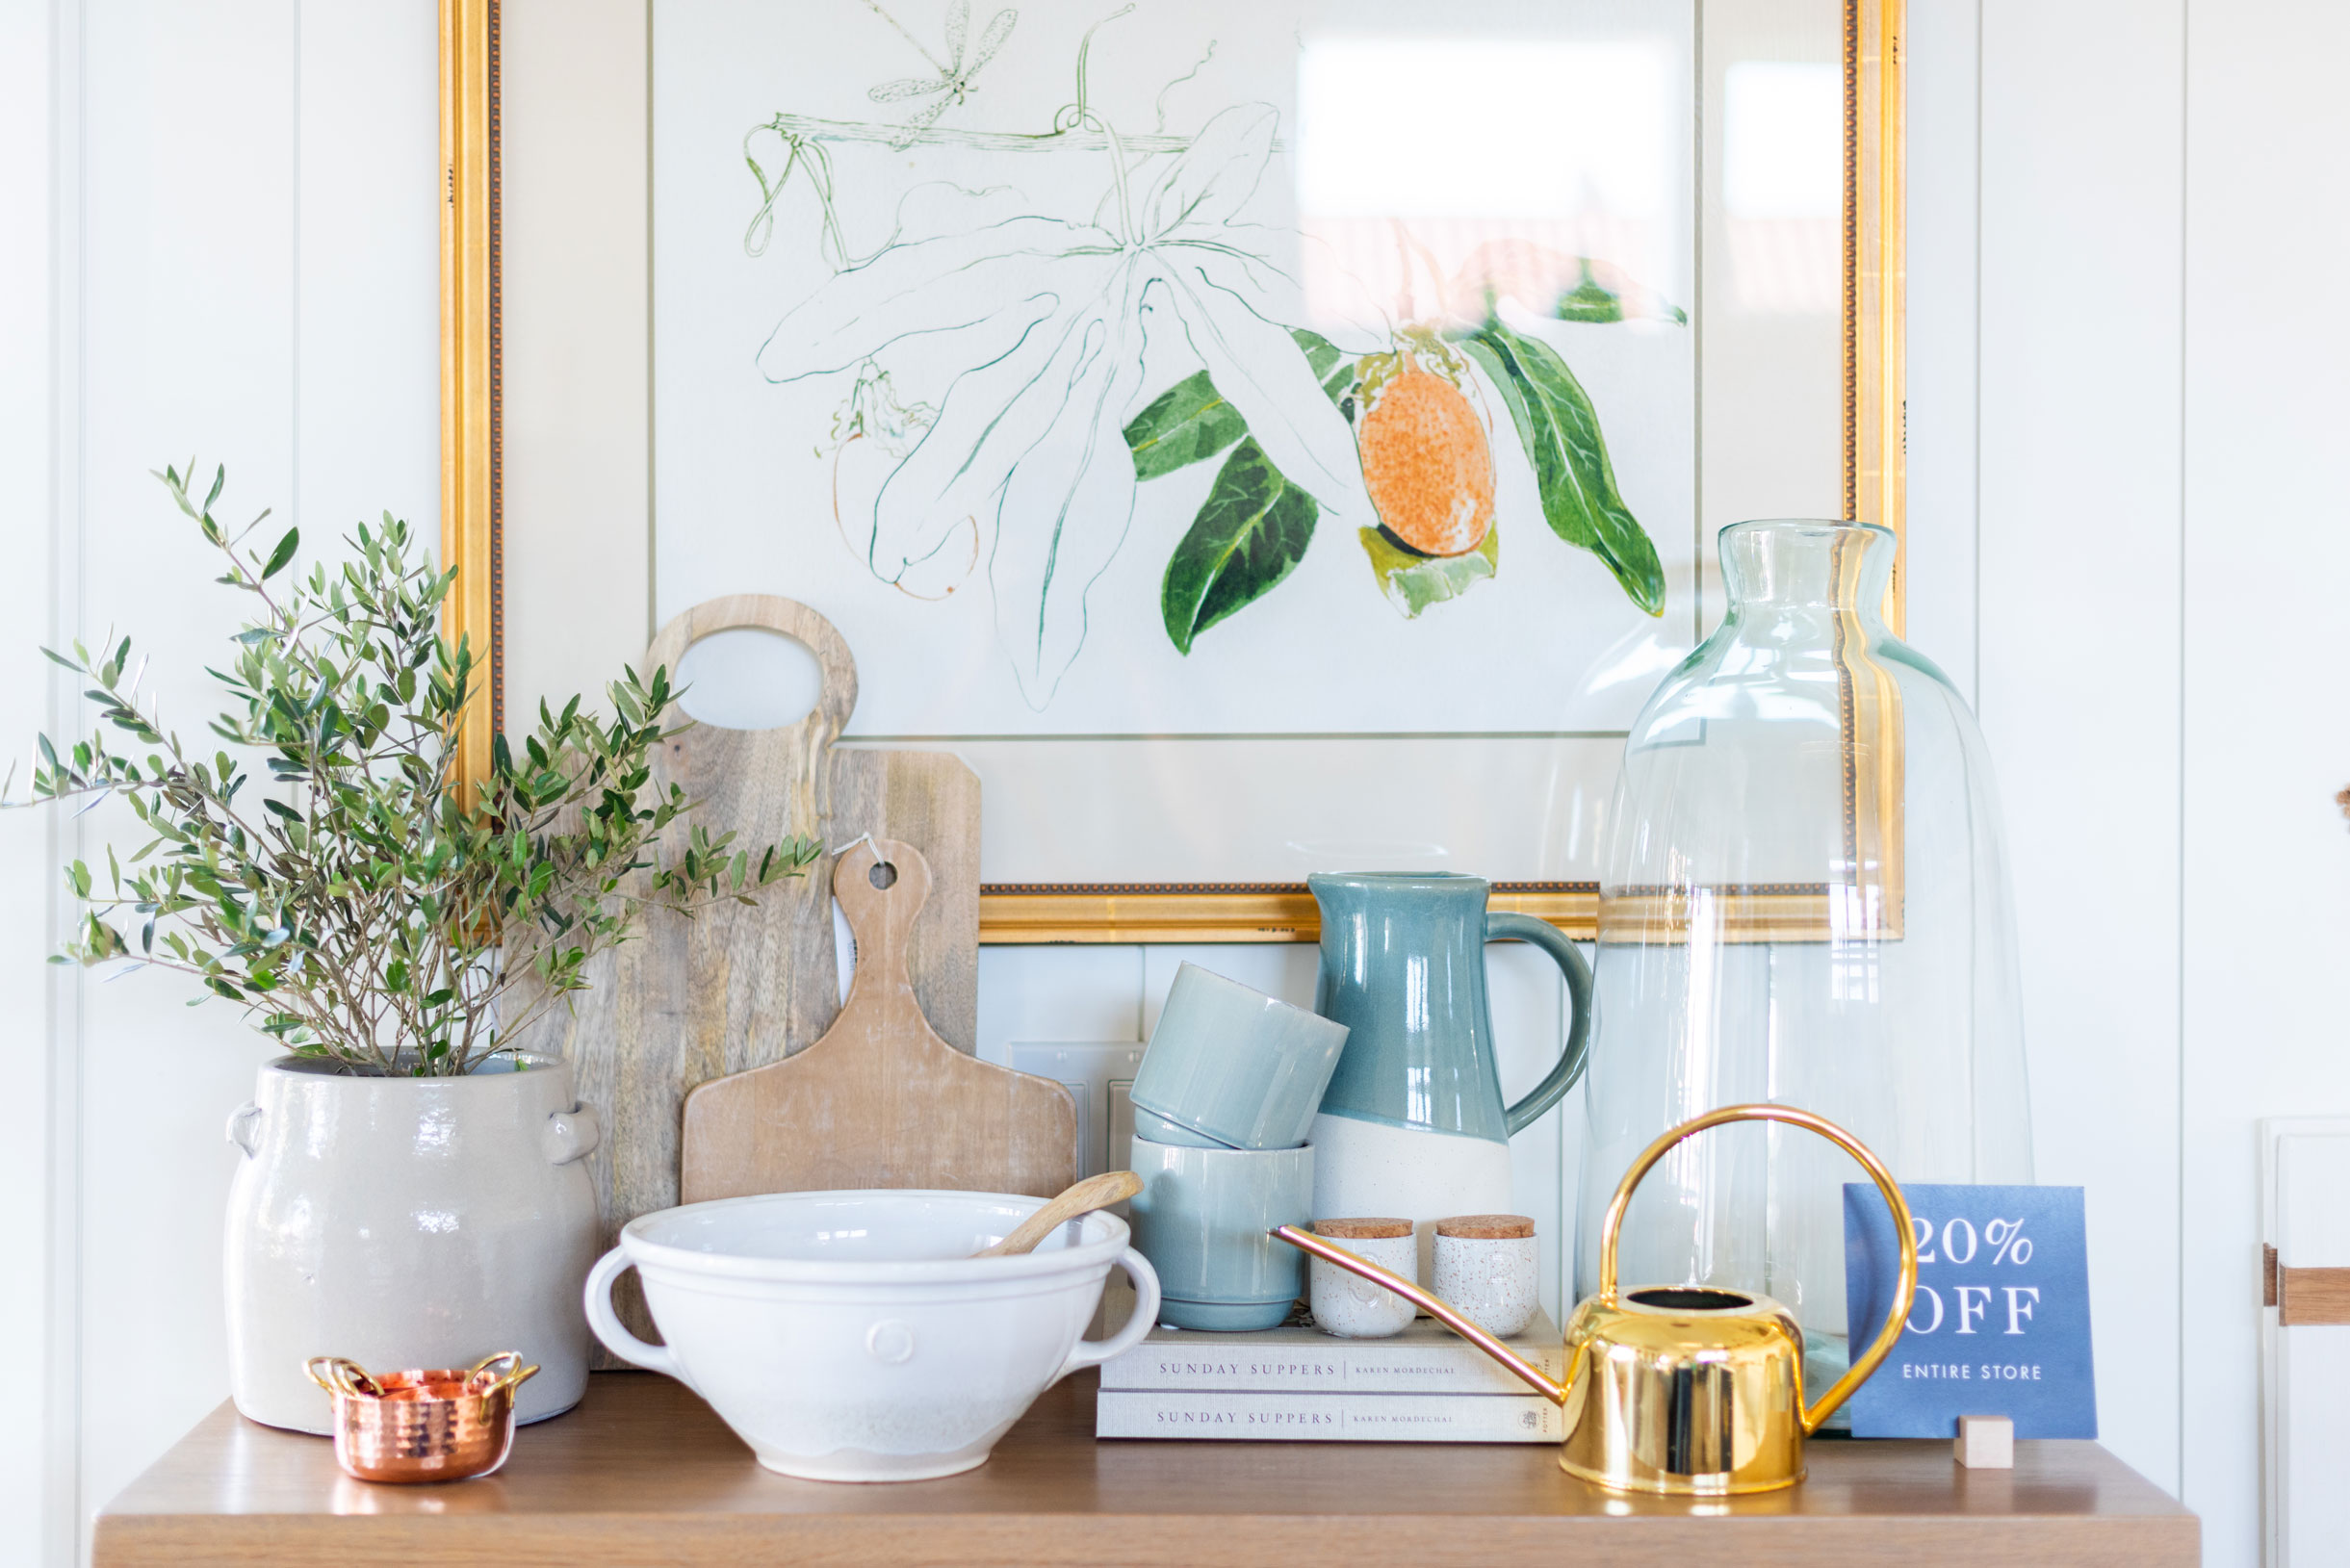 Products shown:    Mango Wood Bread Board,       Short Cutting Boards   ,    Gold Watering Can   ,    Zina Pot   ,    Salt & Pepper Cellar Salt    ,    Green Dipped Pitcher   ,    Copper Measuring Cups